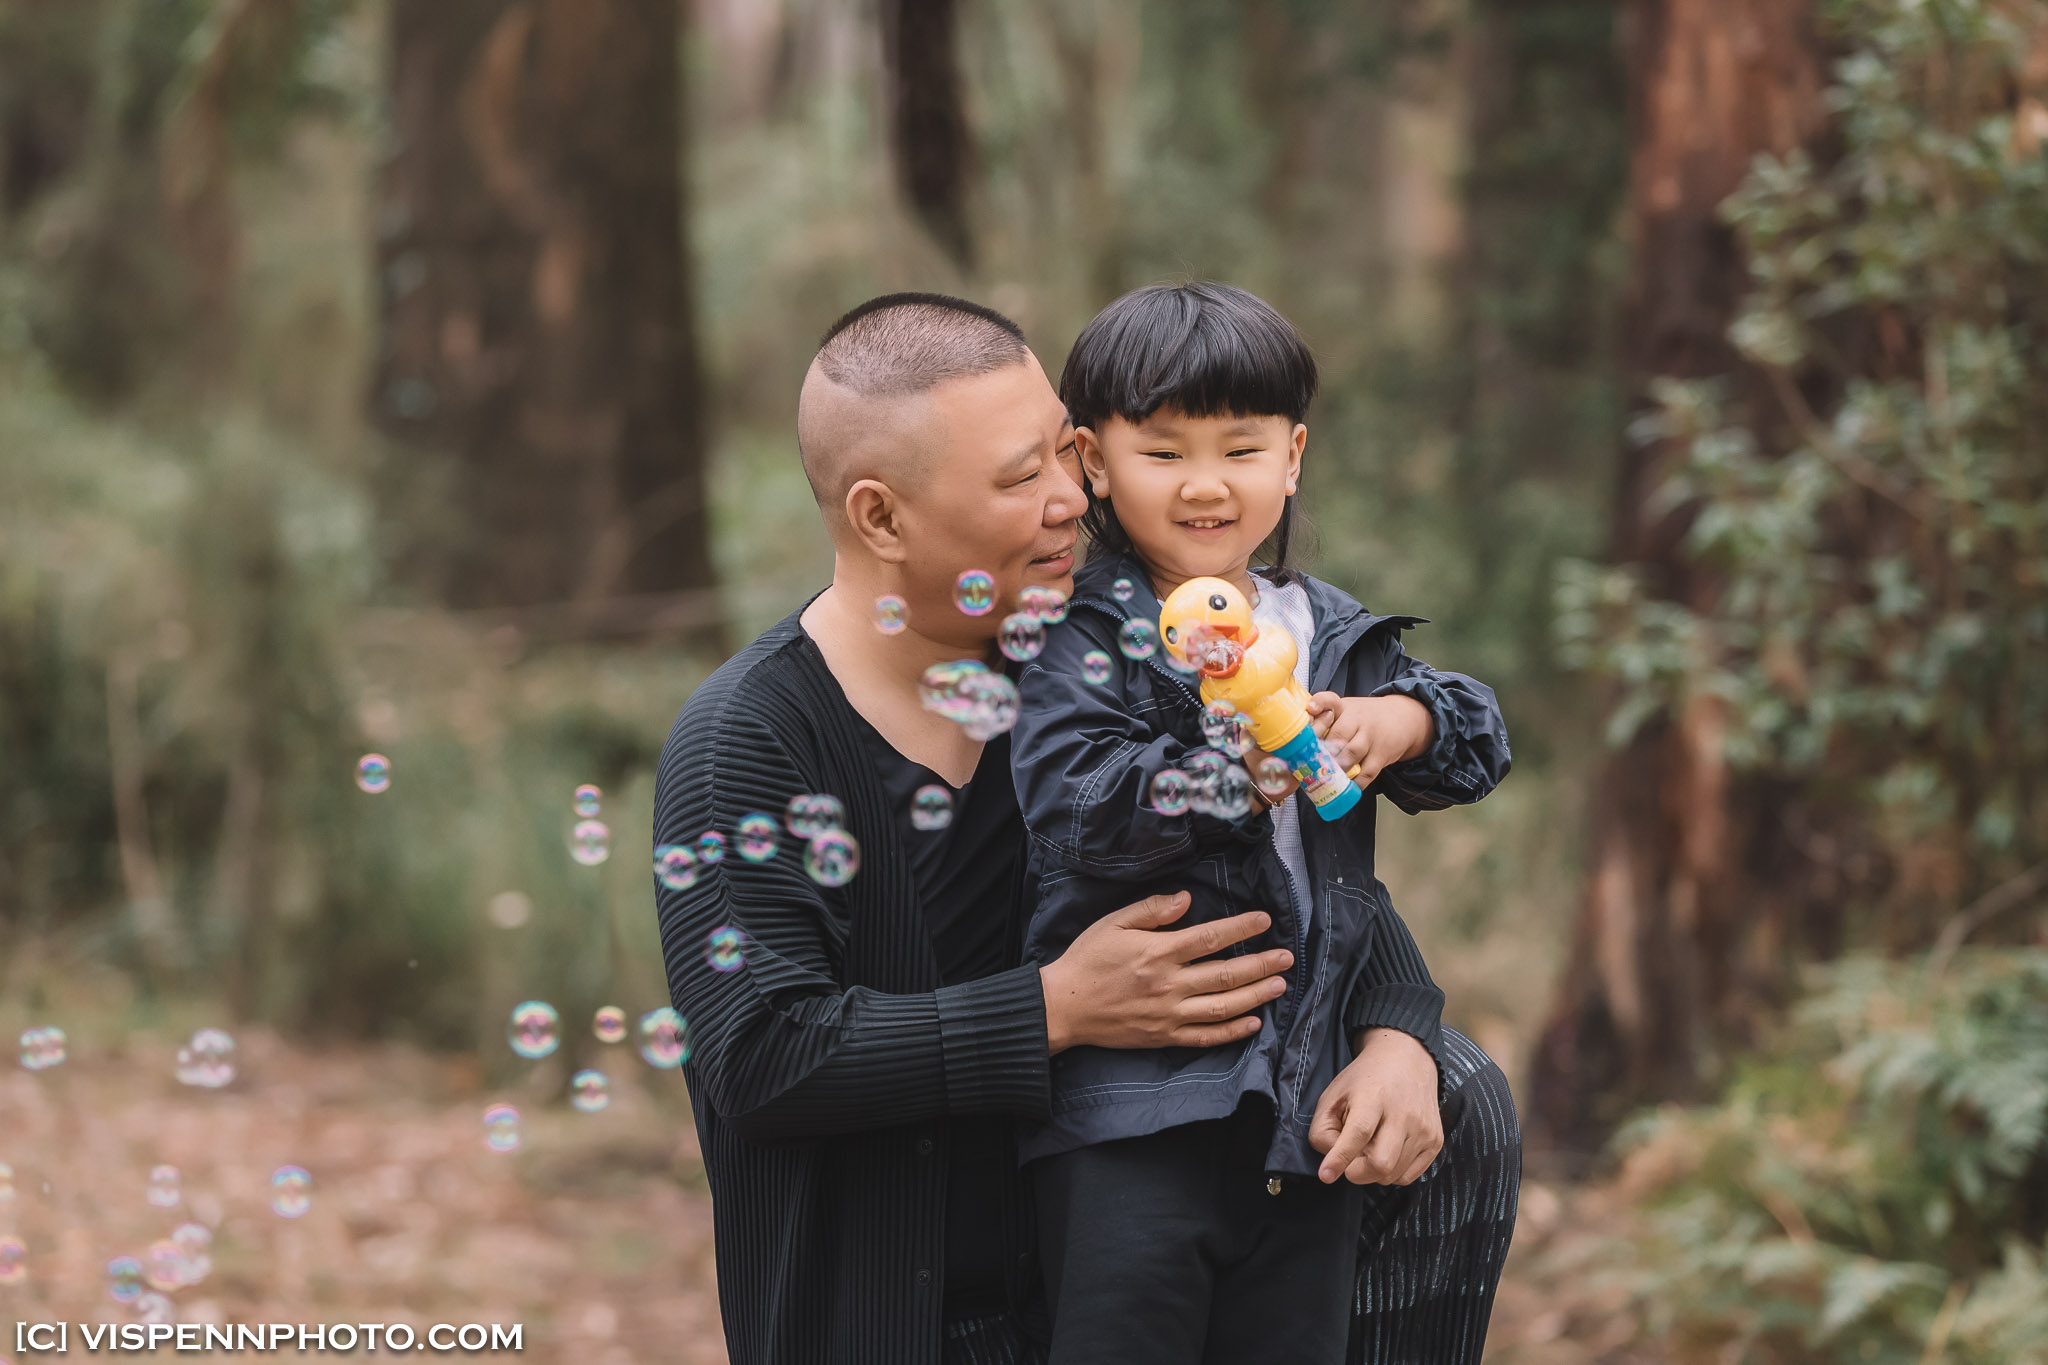 Melbourne Newborn Baby Family Photo BaoBao VISPENN 墨尔本 儿童 宝宝 百天照 满月照 孕妇照 全家福 KIDS VISPENN P 3925